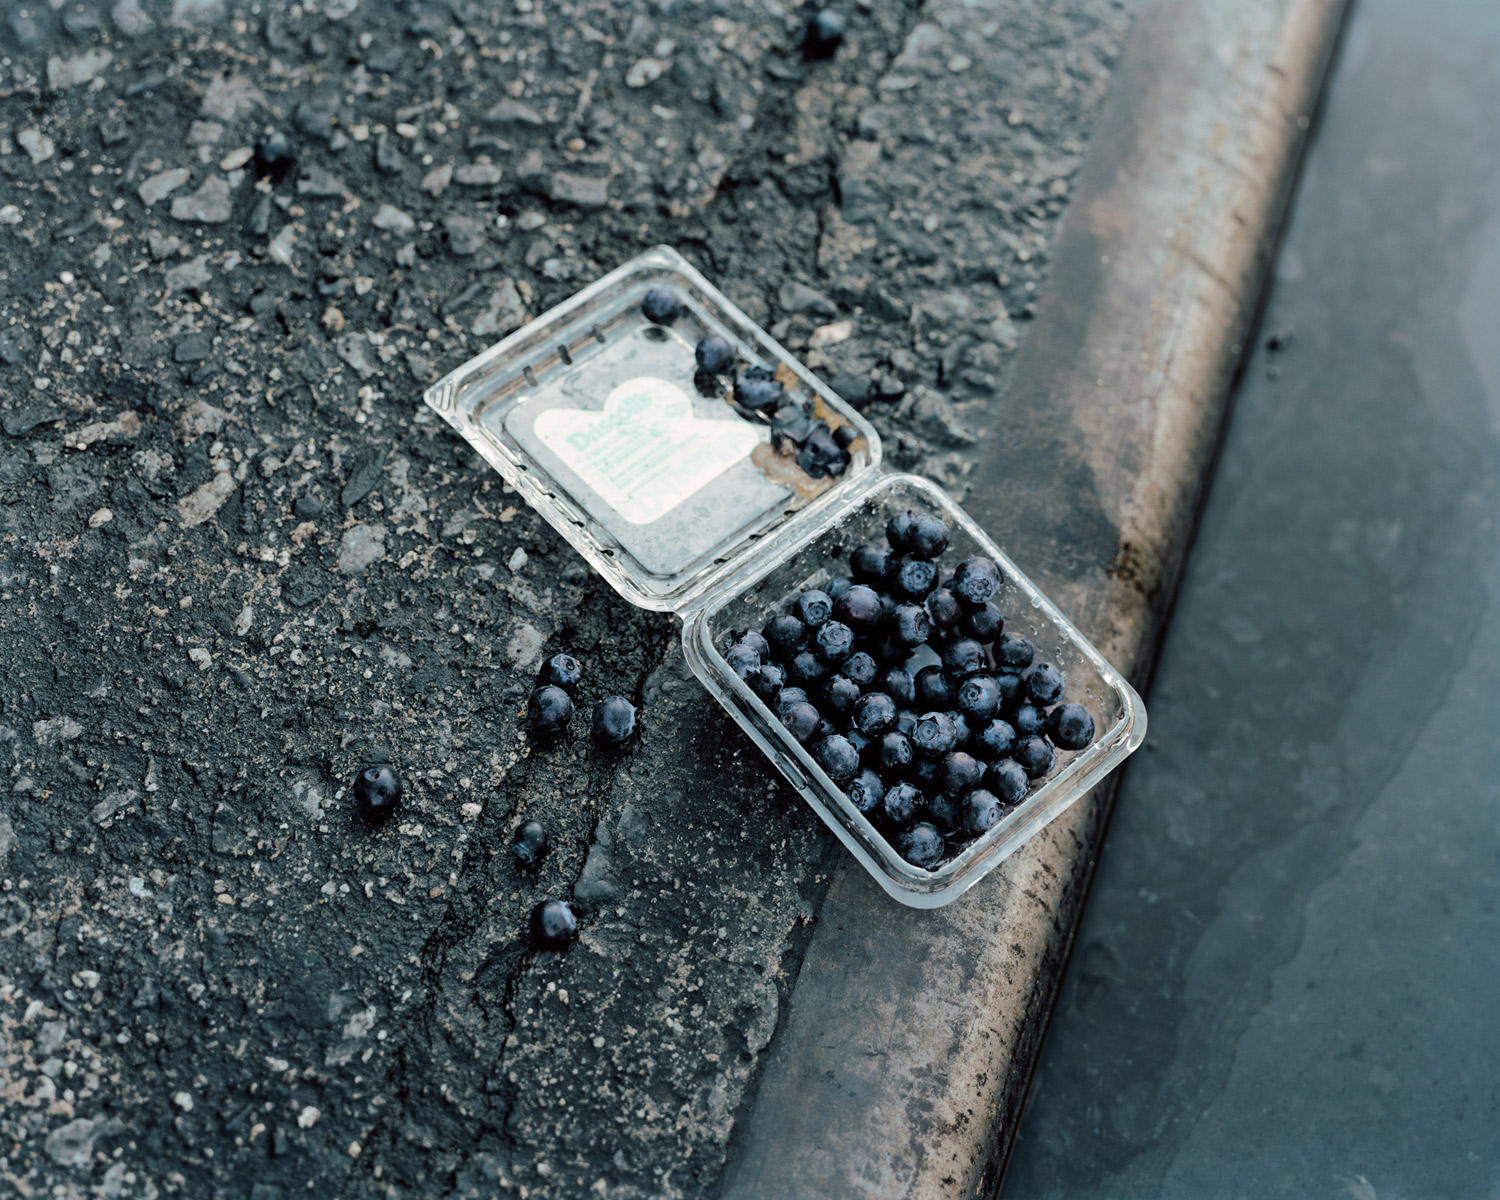 Blueberries In The Gutter At Dawn Moments Before Street Sweeping Looking East From Fulton Street & Nostrand Avenue, Brooklyn, 2010